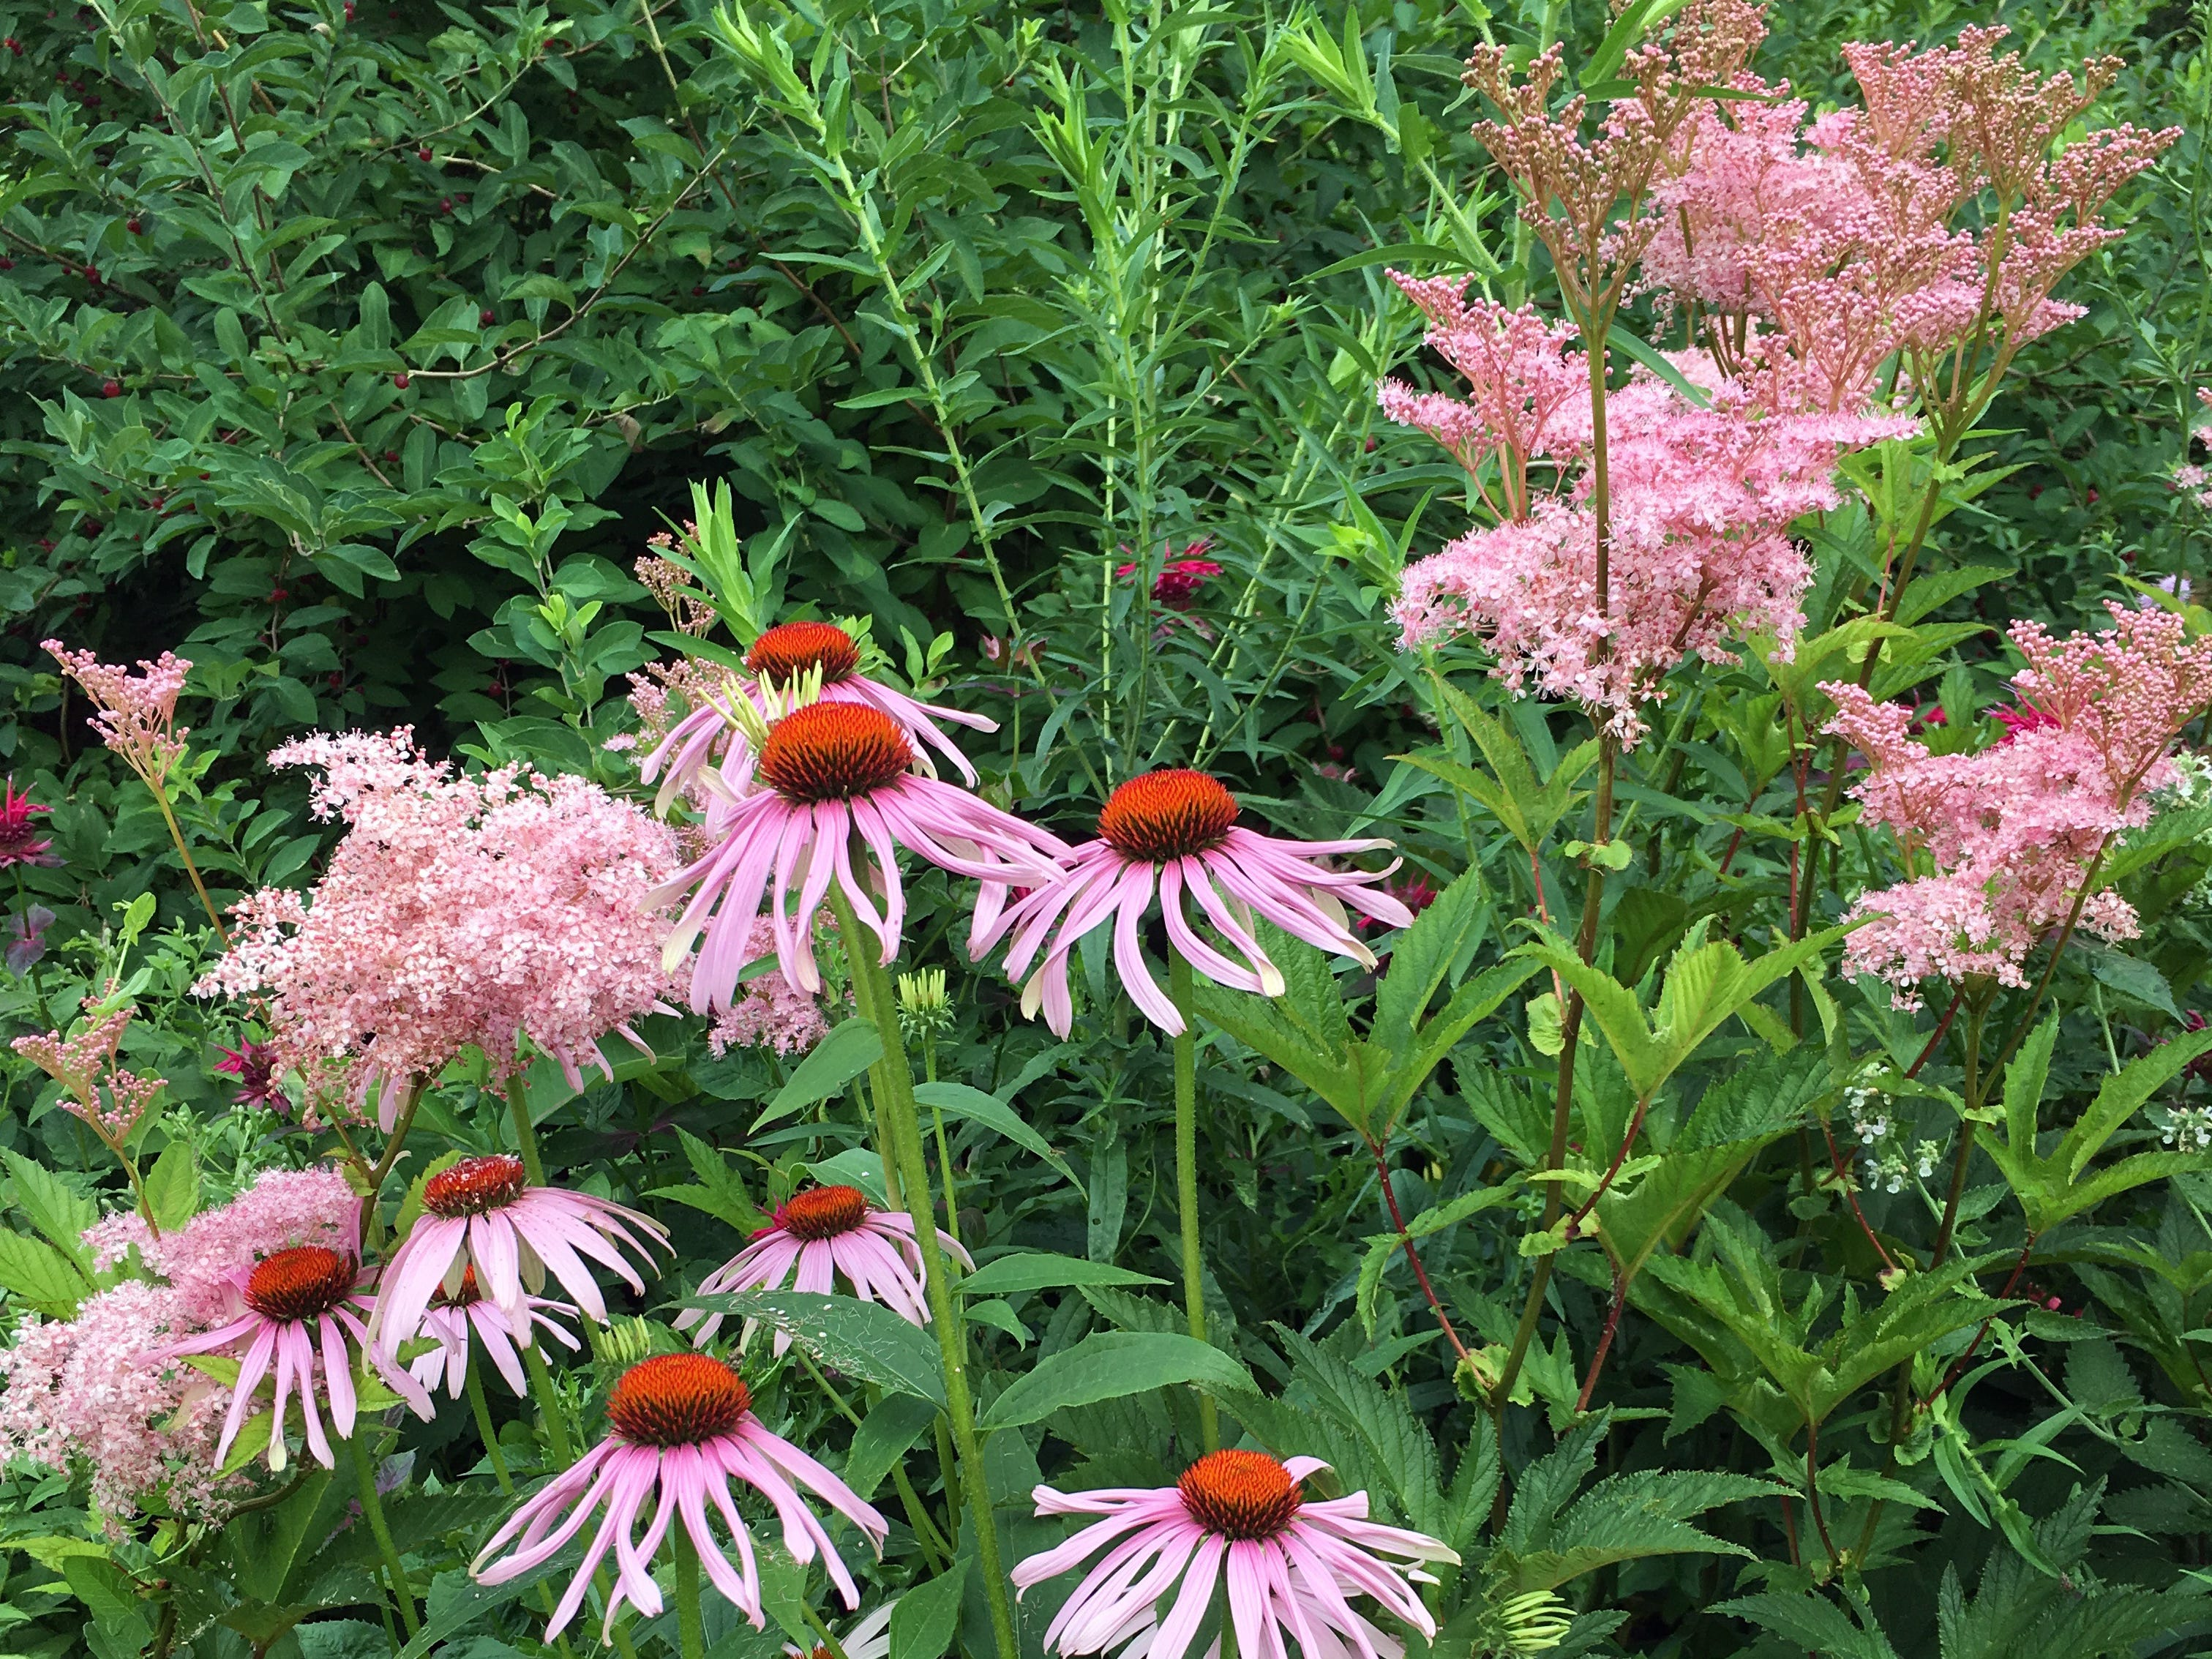 Cone flowers and Queen of the Prairie bloom in Ann Sheahan's yard.